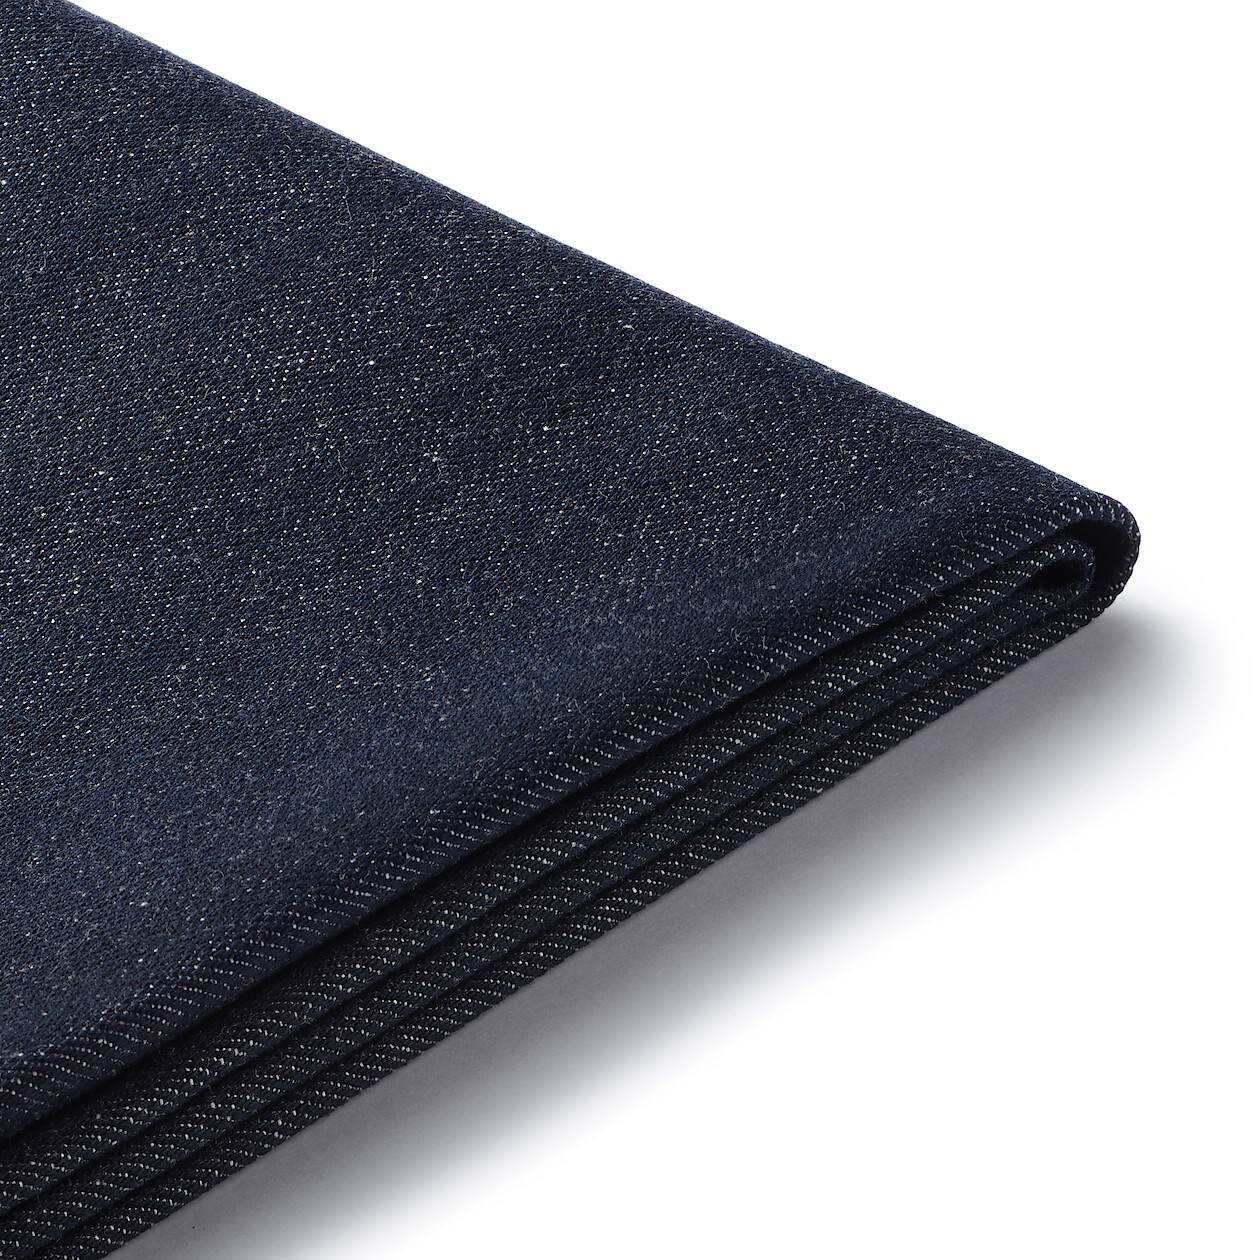 Ctn Denim Cover For Sofa 2 5s Feather Pkt Coil Navy For 2 5s